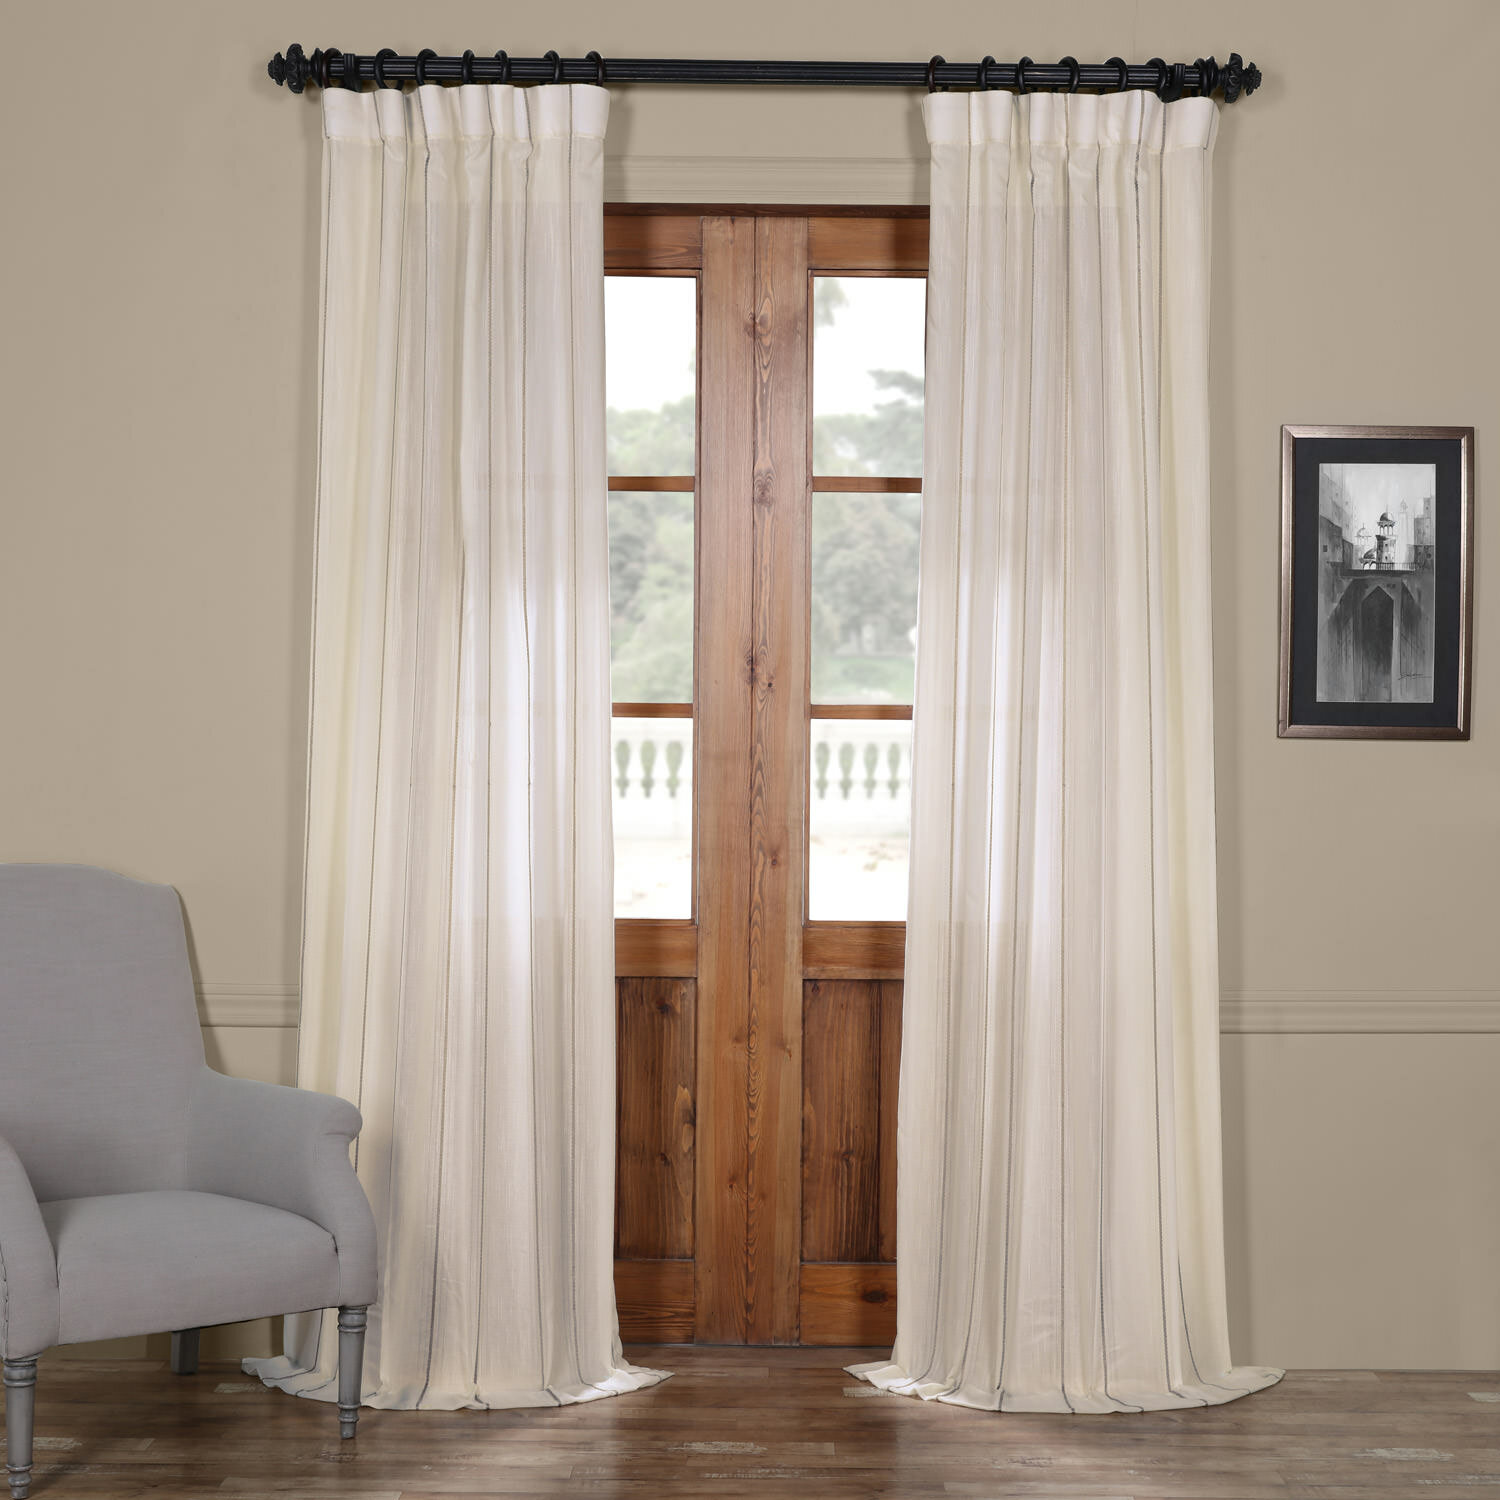 curtain kitchen com amazon doublewide sheer drapes poly dp sldw shch home price half white inch solid curtains voile